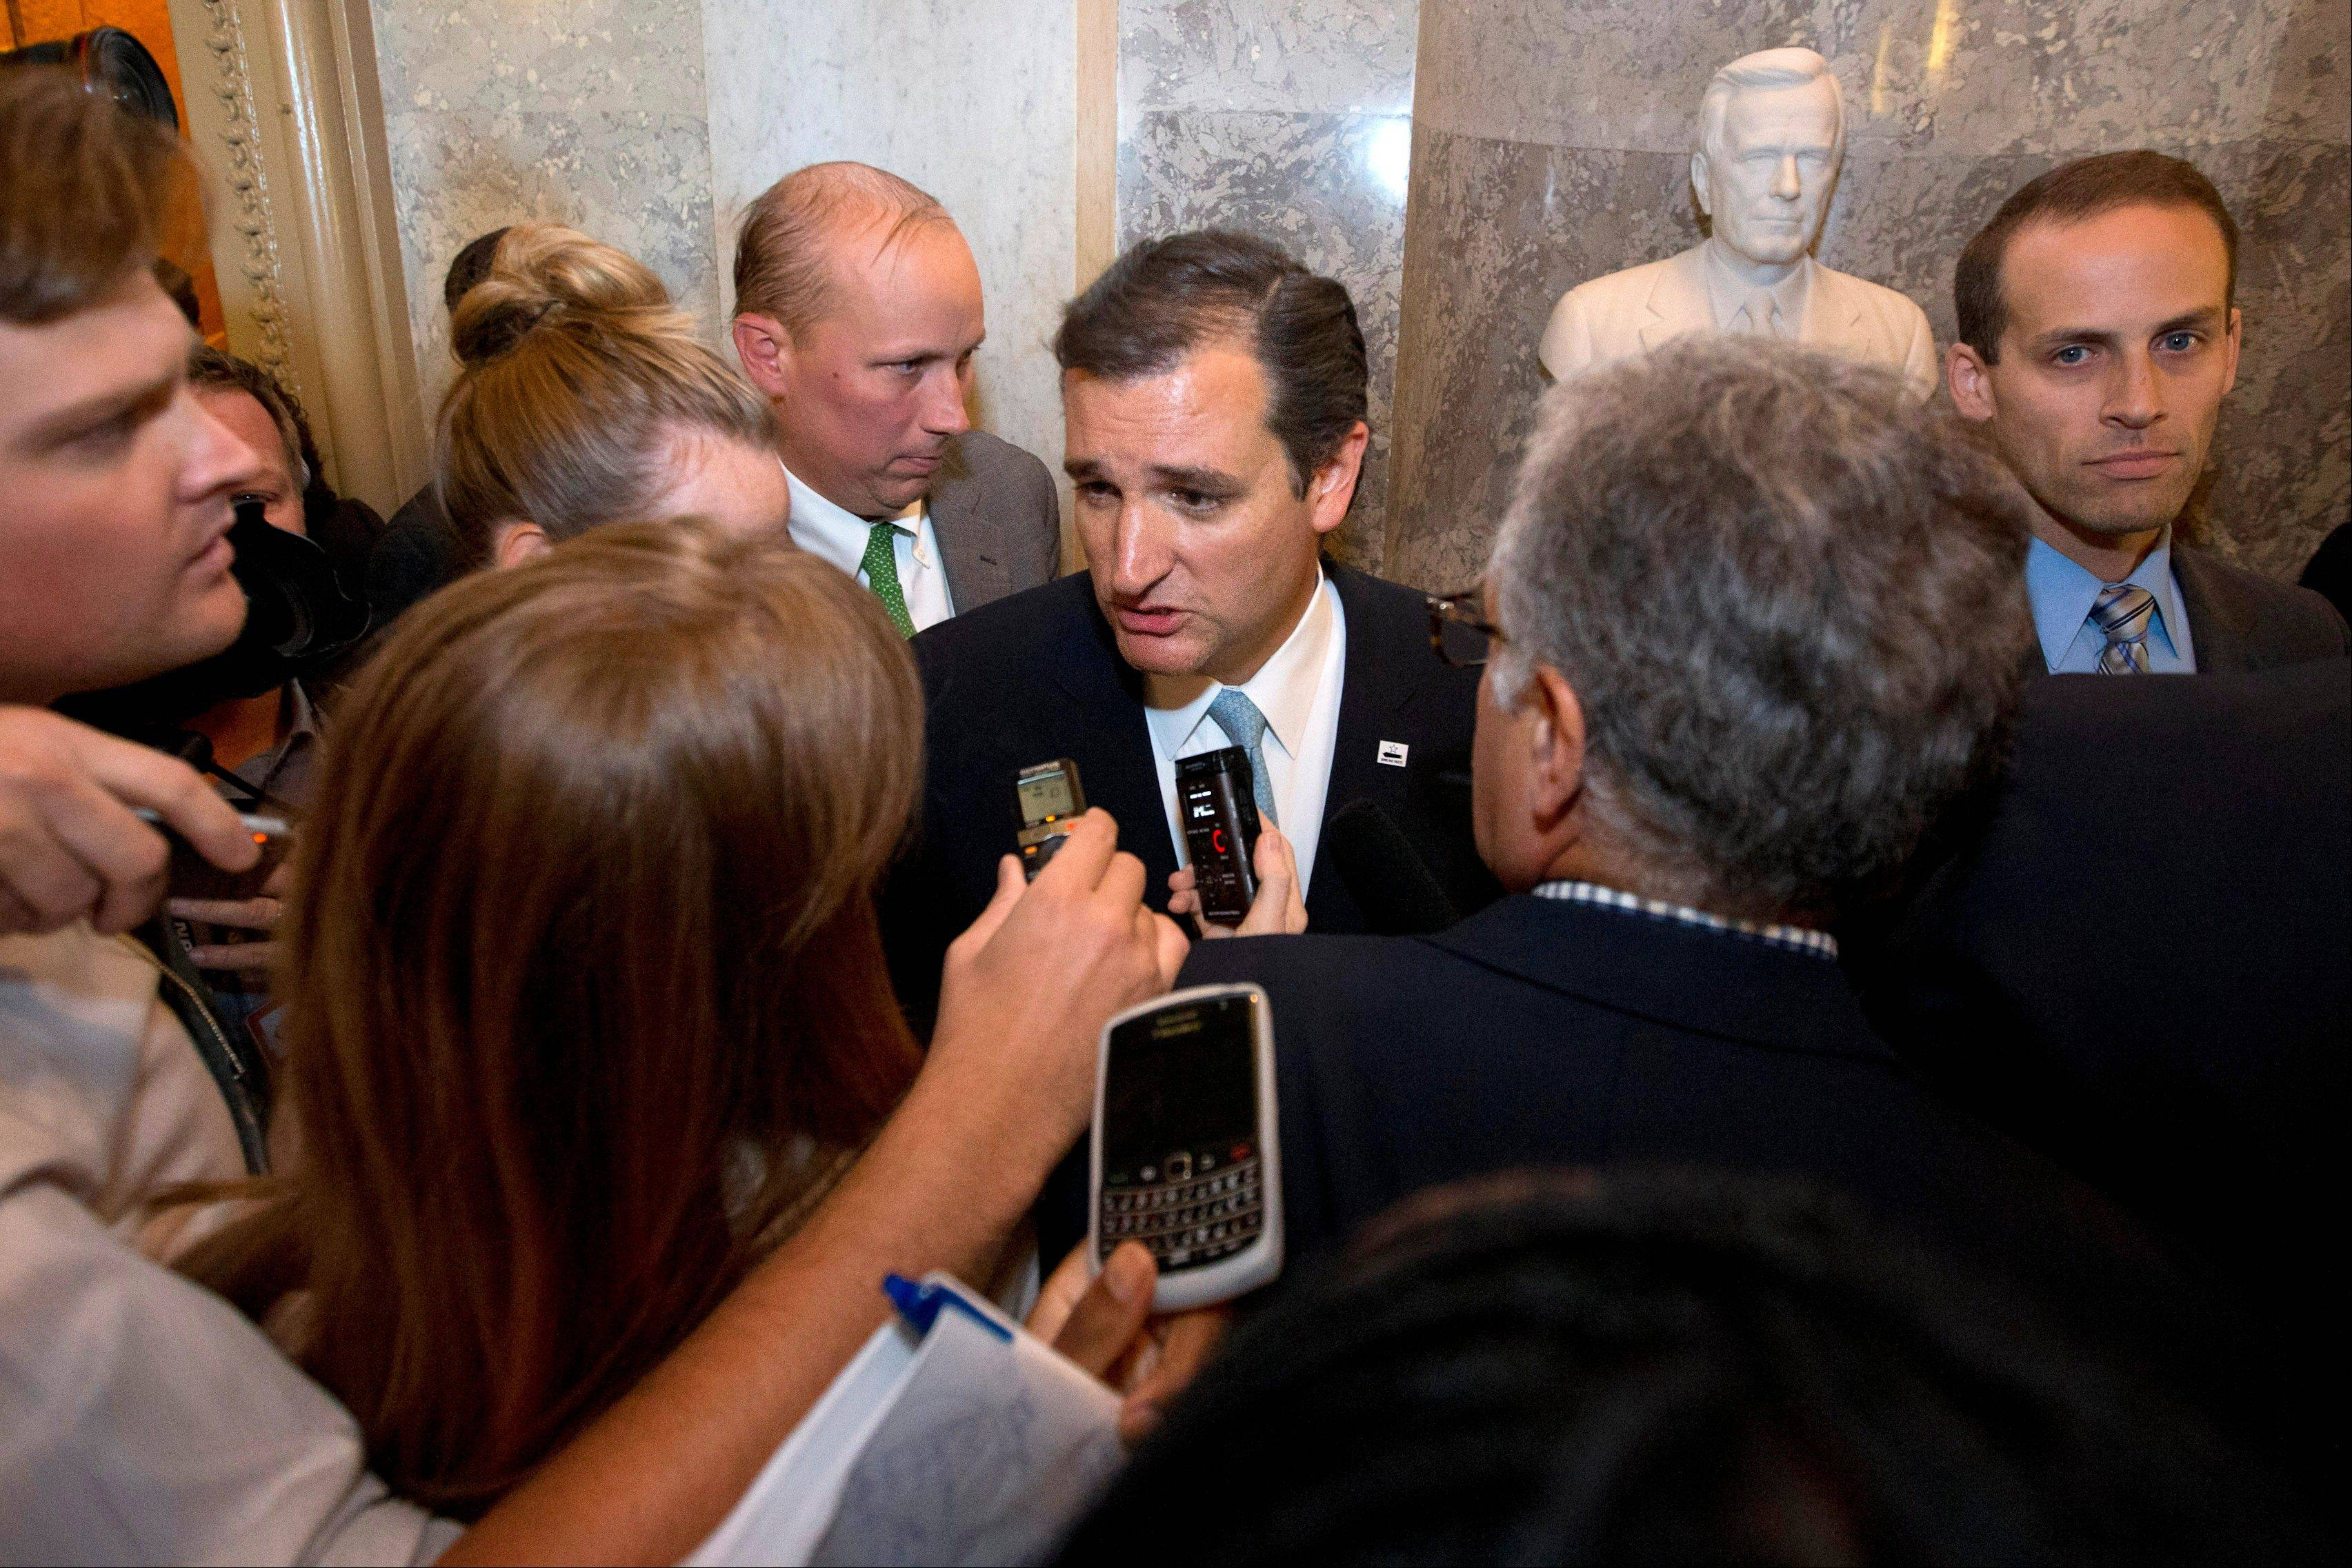 Sen. Ted Cruz, R-Texas speaks to reporters on Capitol Hill in Washington, Wednesday, Sept. 25, 2013, after his marathon speech on the Senate floor. Cruz ended a marathon Senate speech opposing President Barack Obama's health care law after talking for 21 hours, 19 minutes.